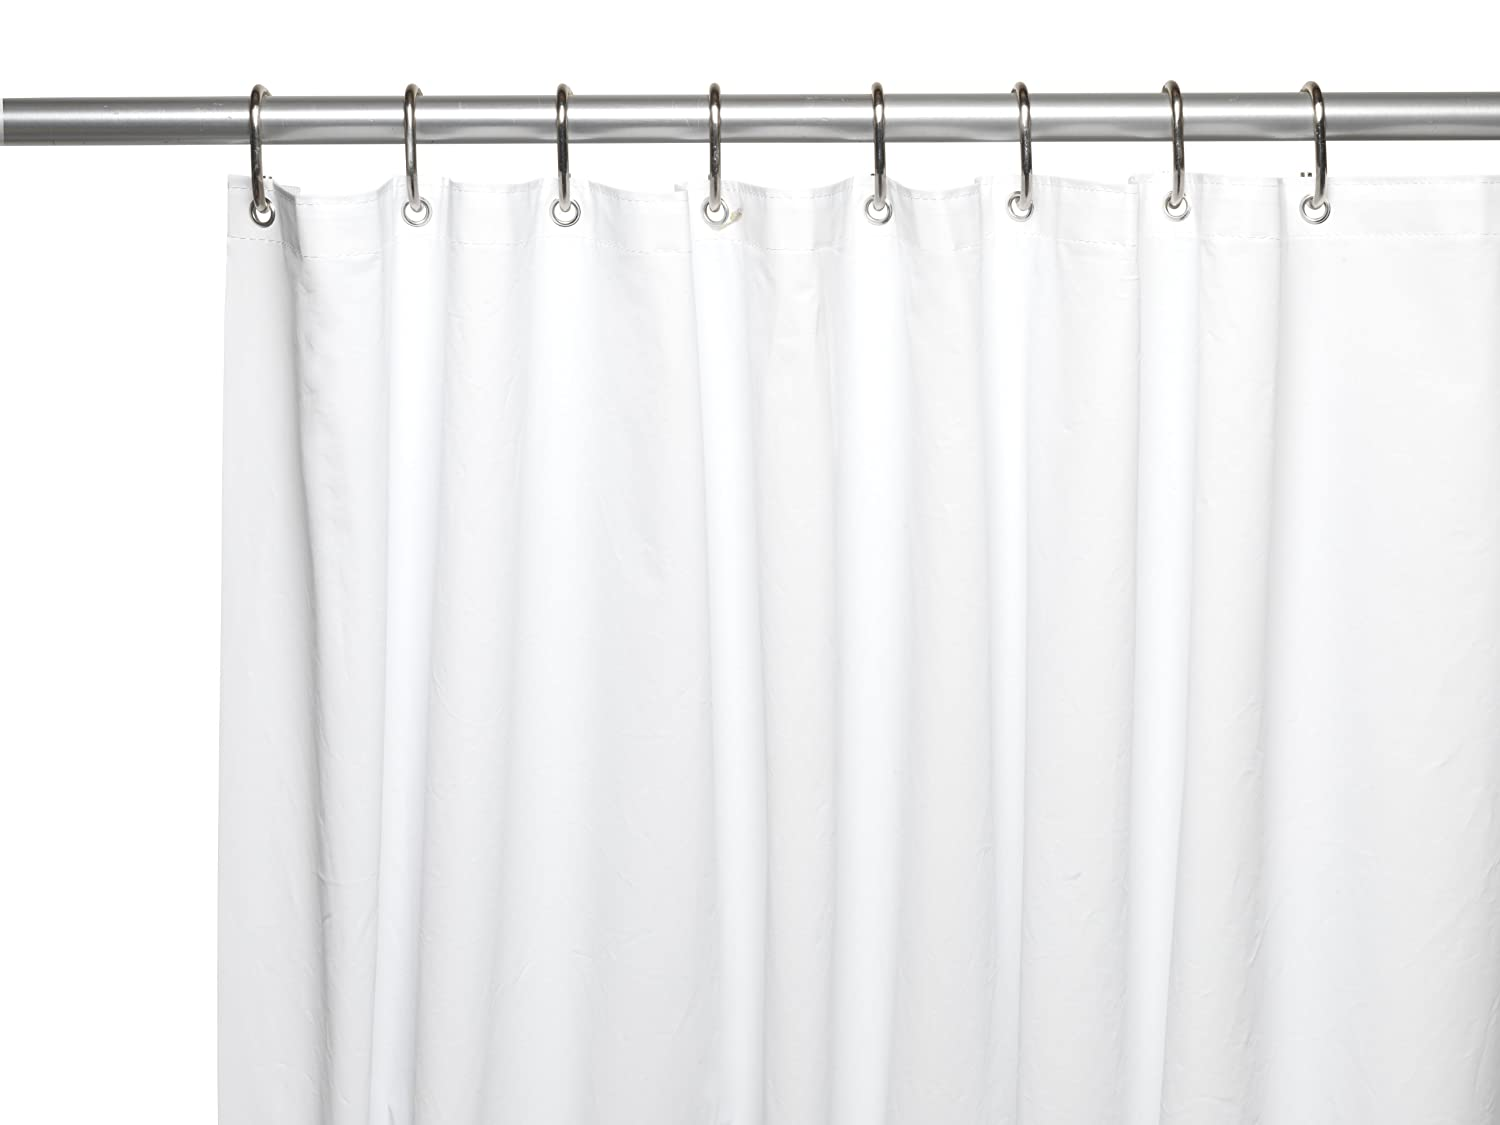 Super Clear X-Long Carnation Home Fashions 10-Gauge PEVA 72 by 84-Inch Shower Curtain Liner